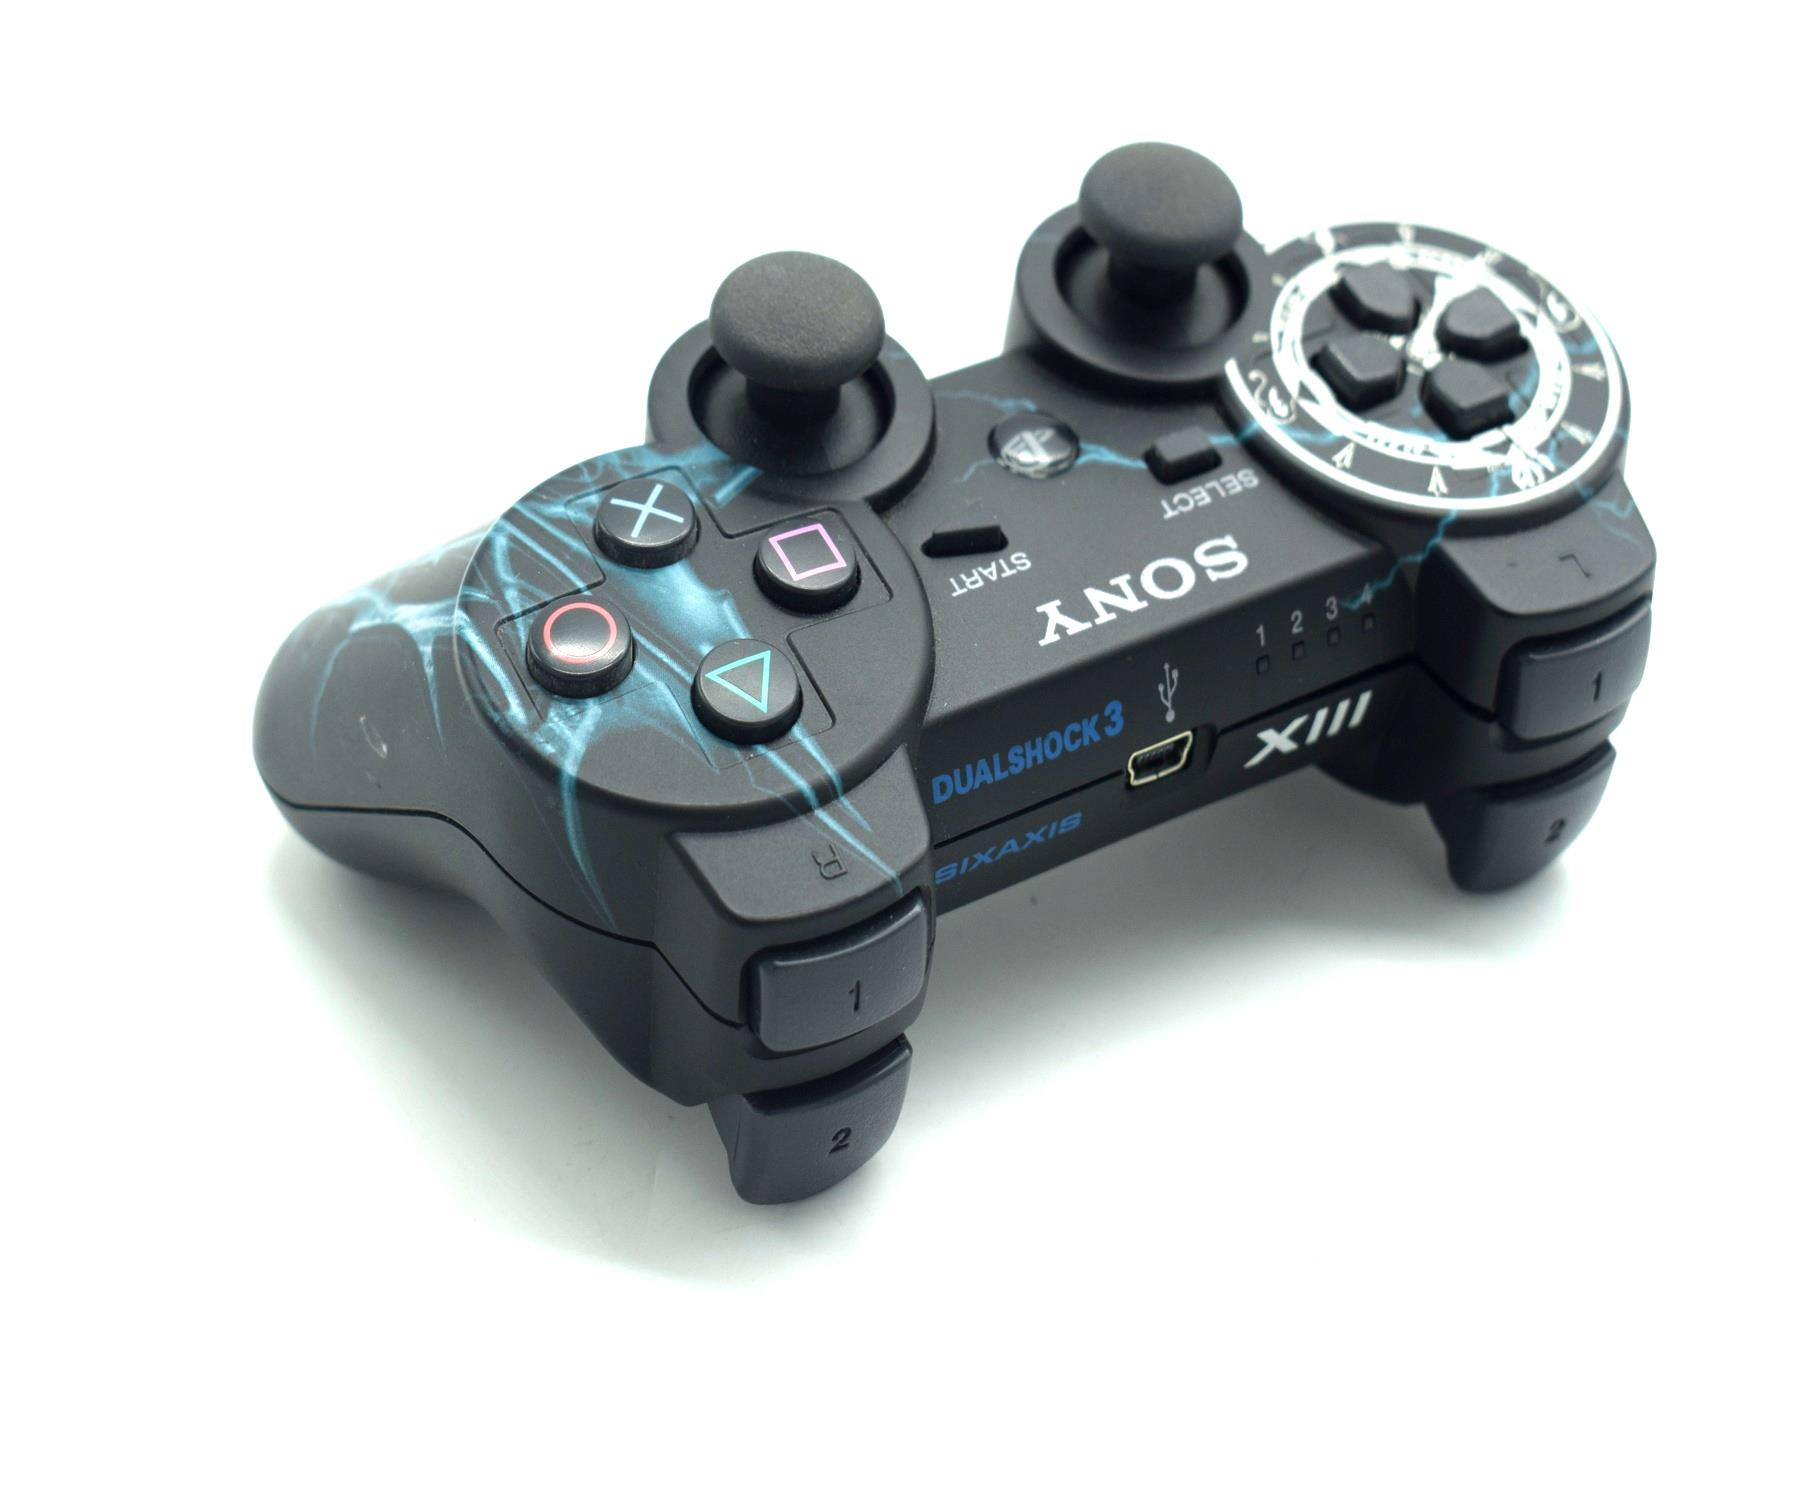 Official-Original-Sony-Playstation-Dual-Shock-3-PS3-Controller-Multiple-Colours thumbnail 35